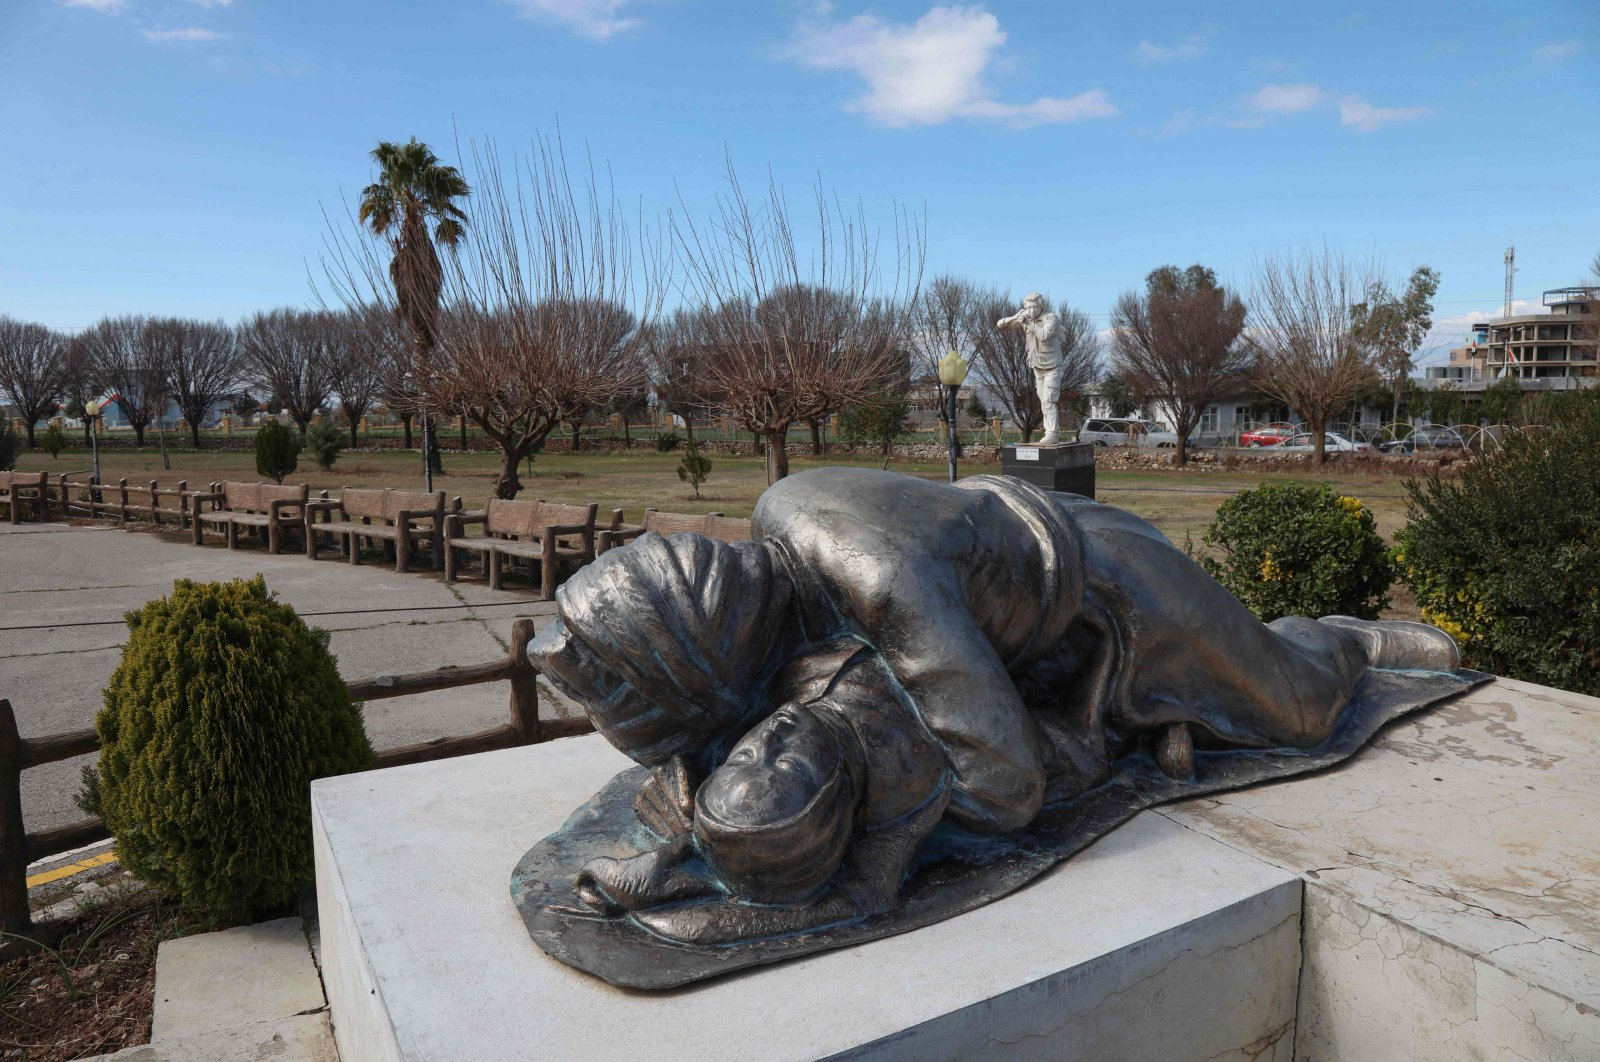 A statue depicting a Kurdish father holding his baby, both killed in the 1988 Halabja Massacre, is part of a memorial monument dedicated to the victims of the attack in the town, Iraq, March 13, 2021. (AFP Photo)